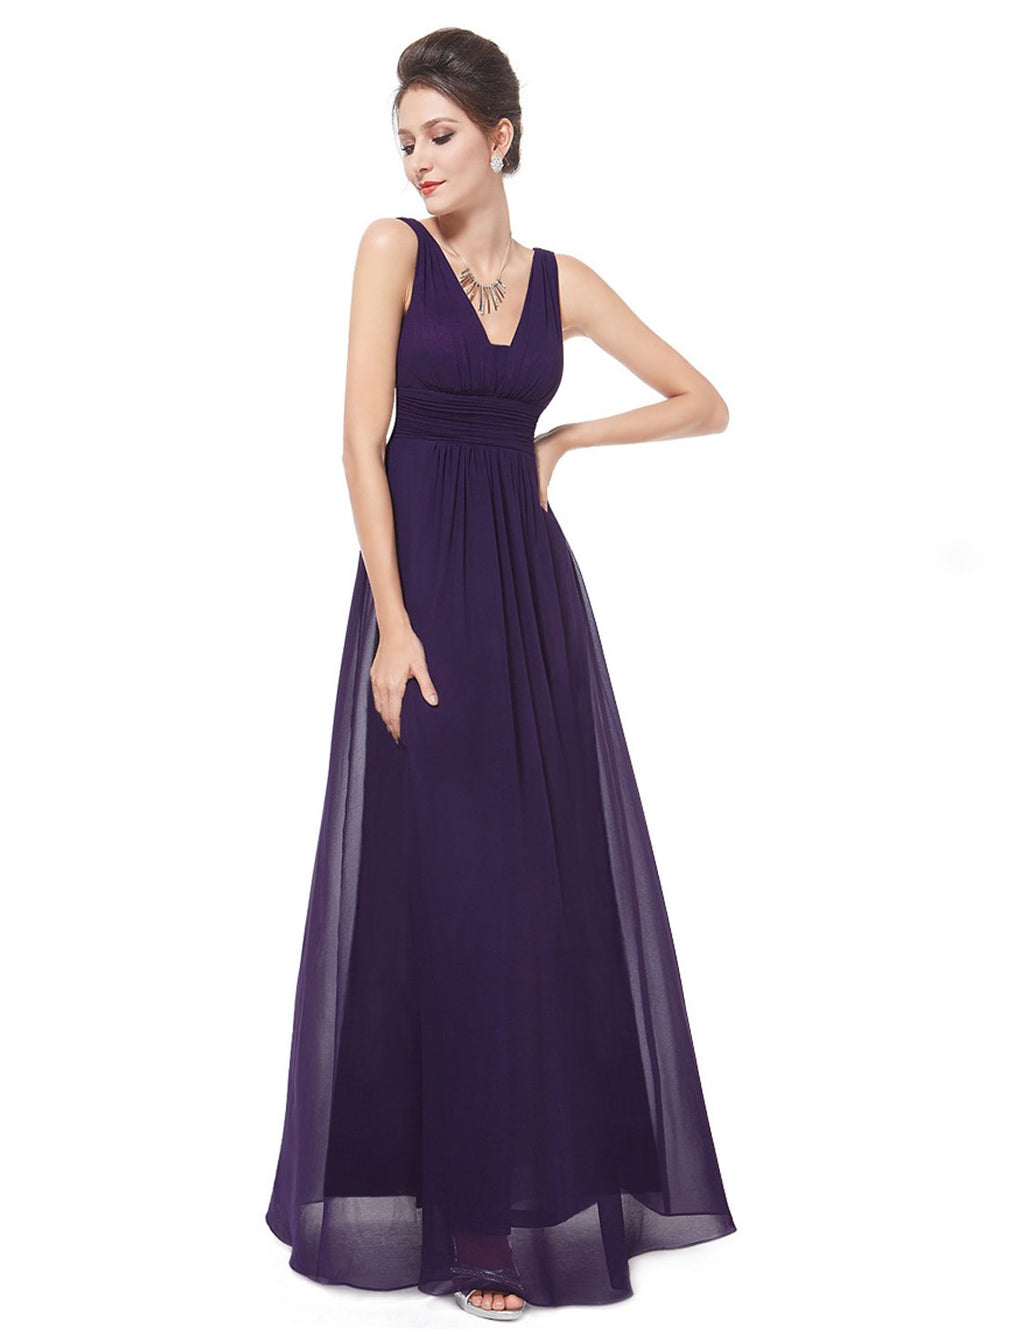 Ayla V neck chiffon bridesmaid gown in dark purple s10 Express NZ wide!